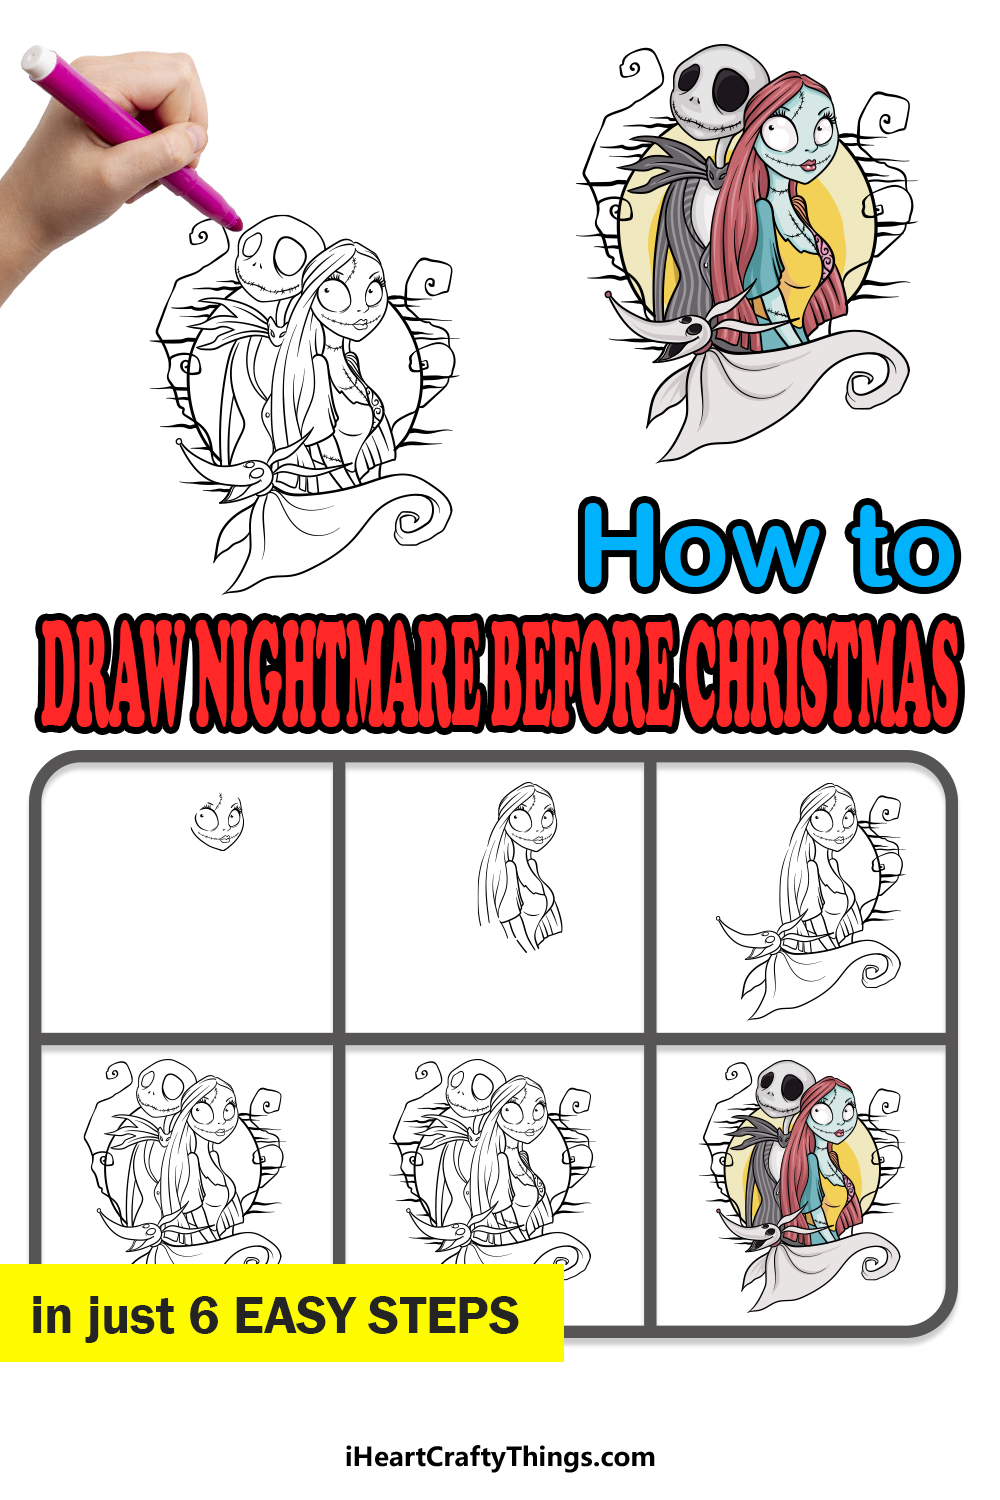 how to draw Nightmare Before Christmas in 6 easy steps